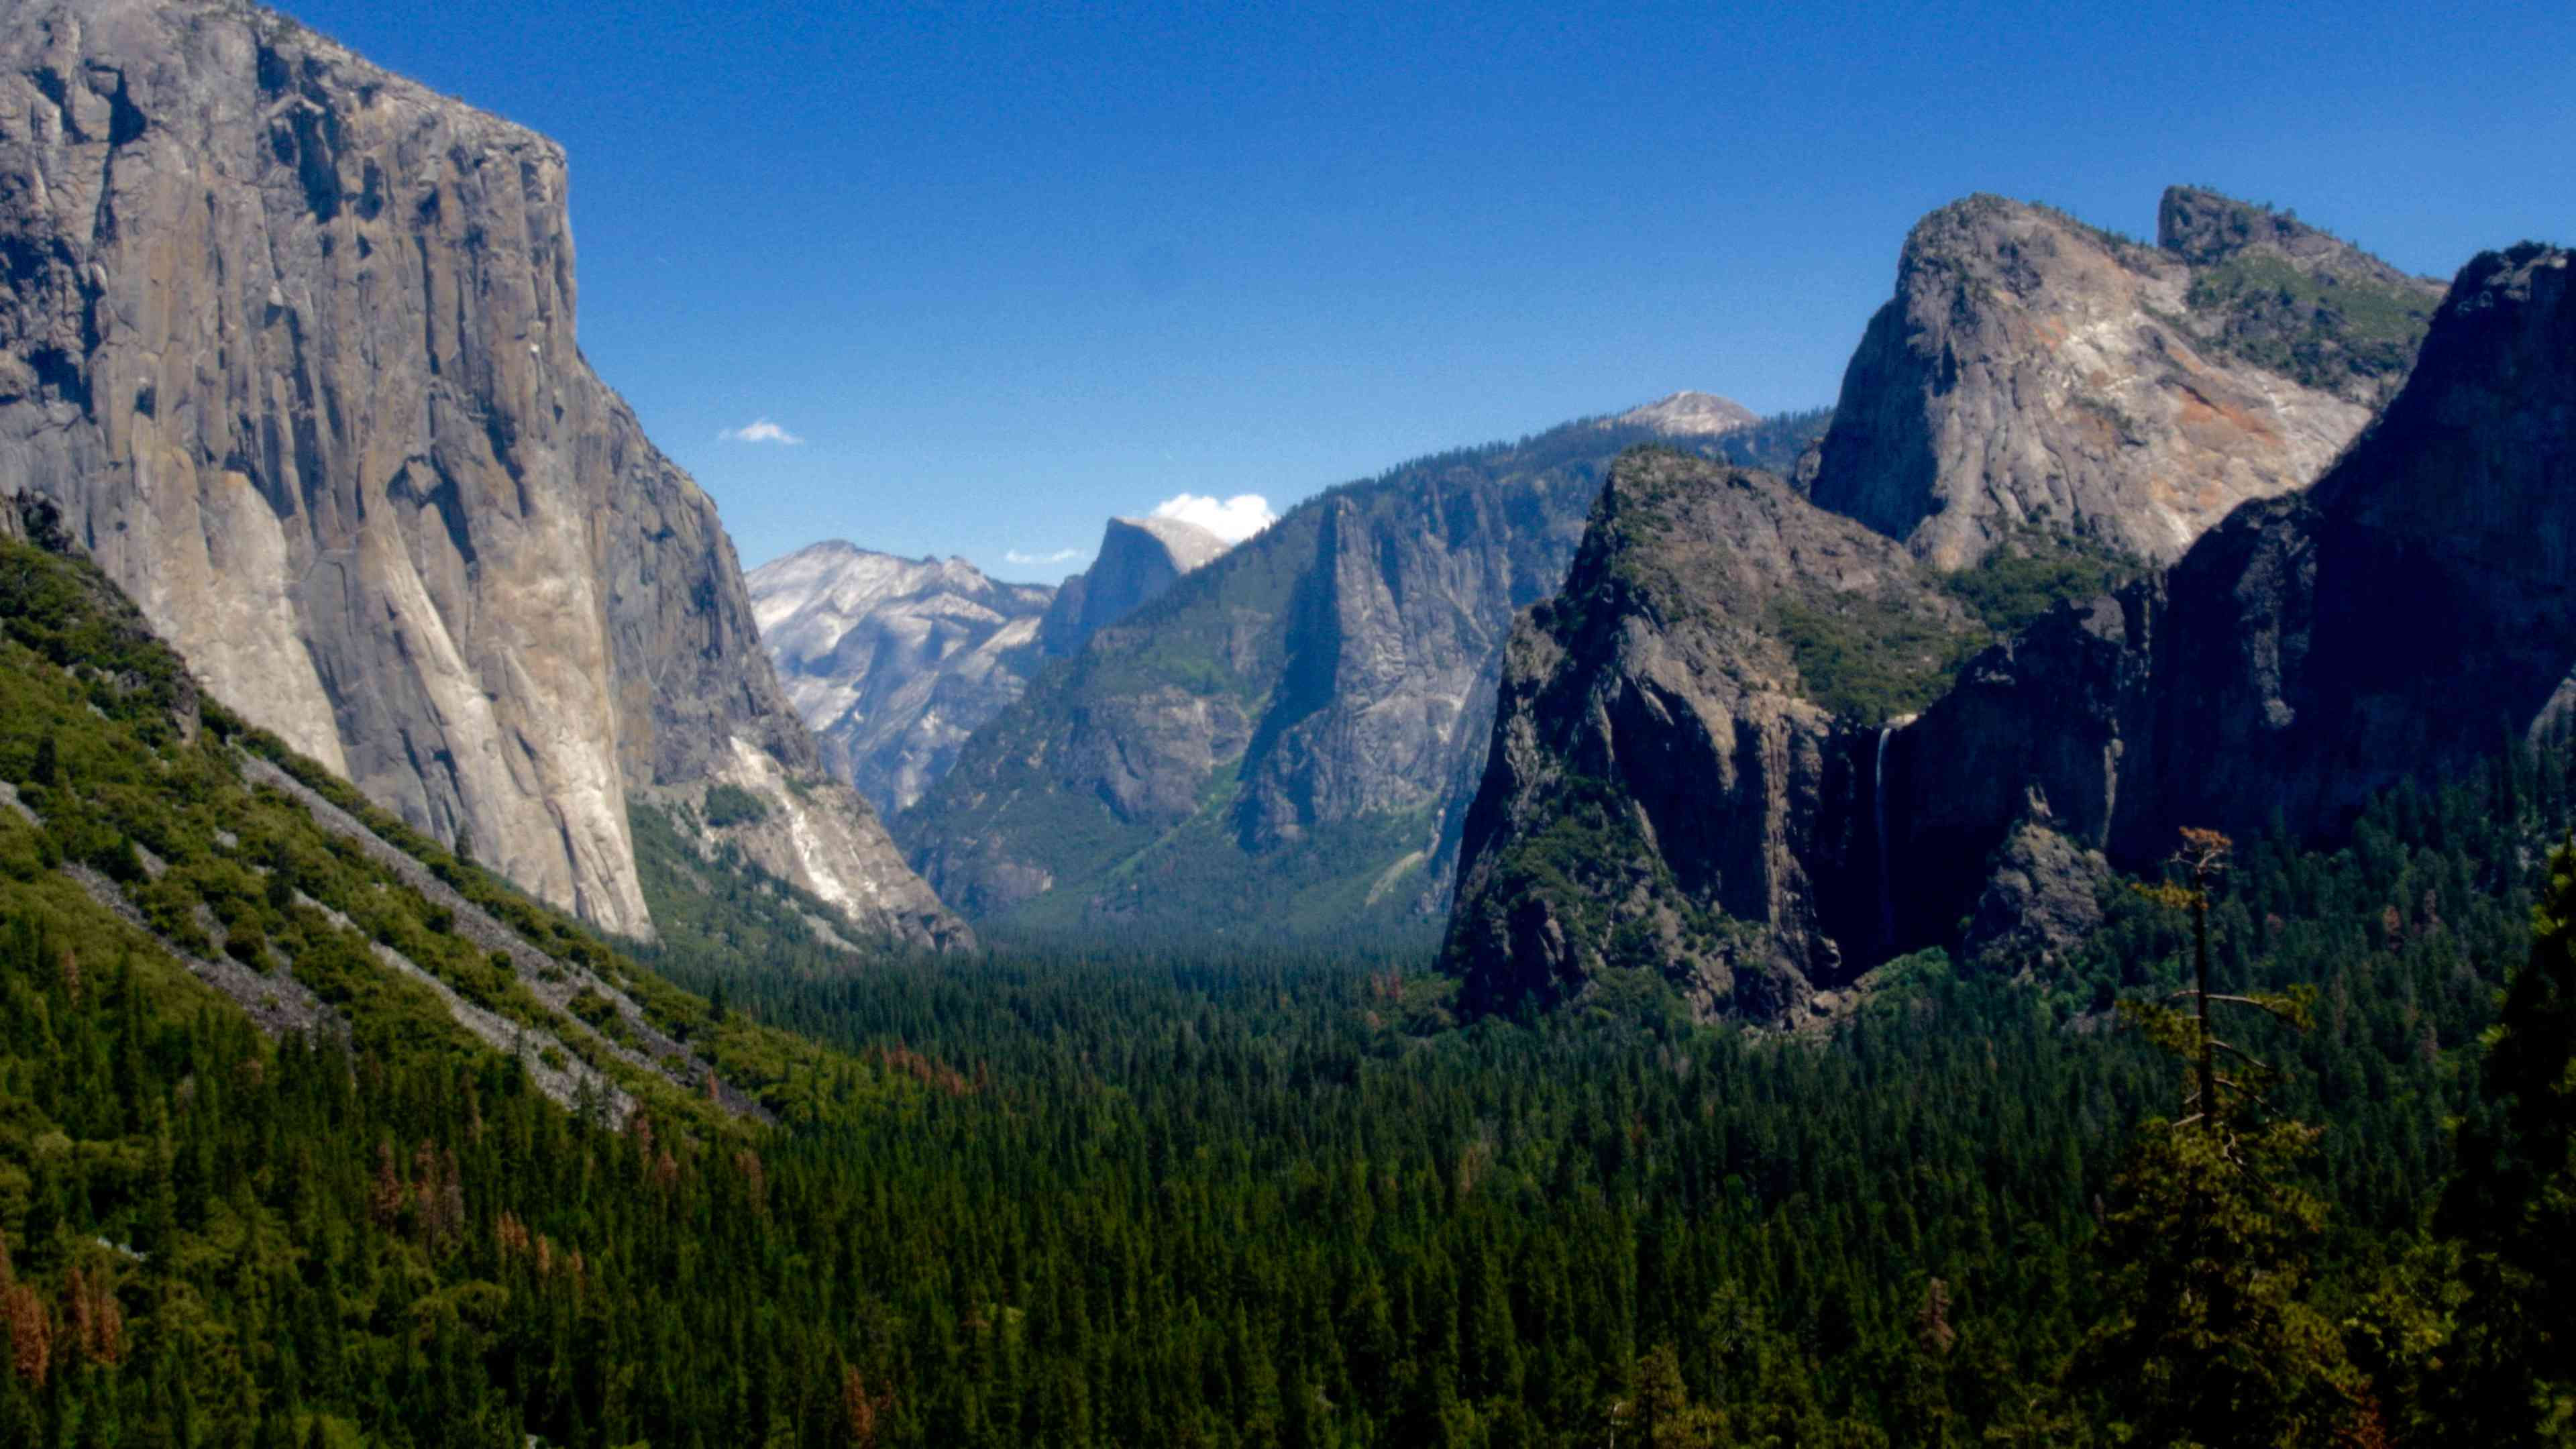 Massive rock formations and climbing walls in the Yosemite Valley